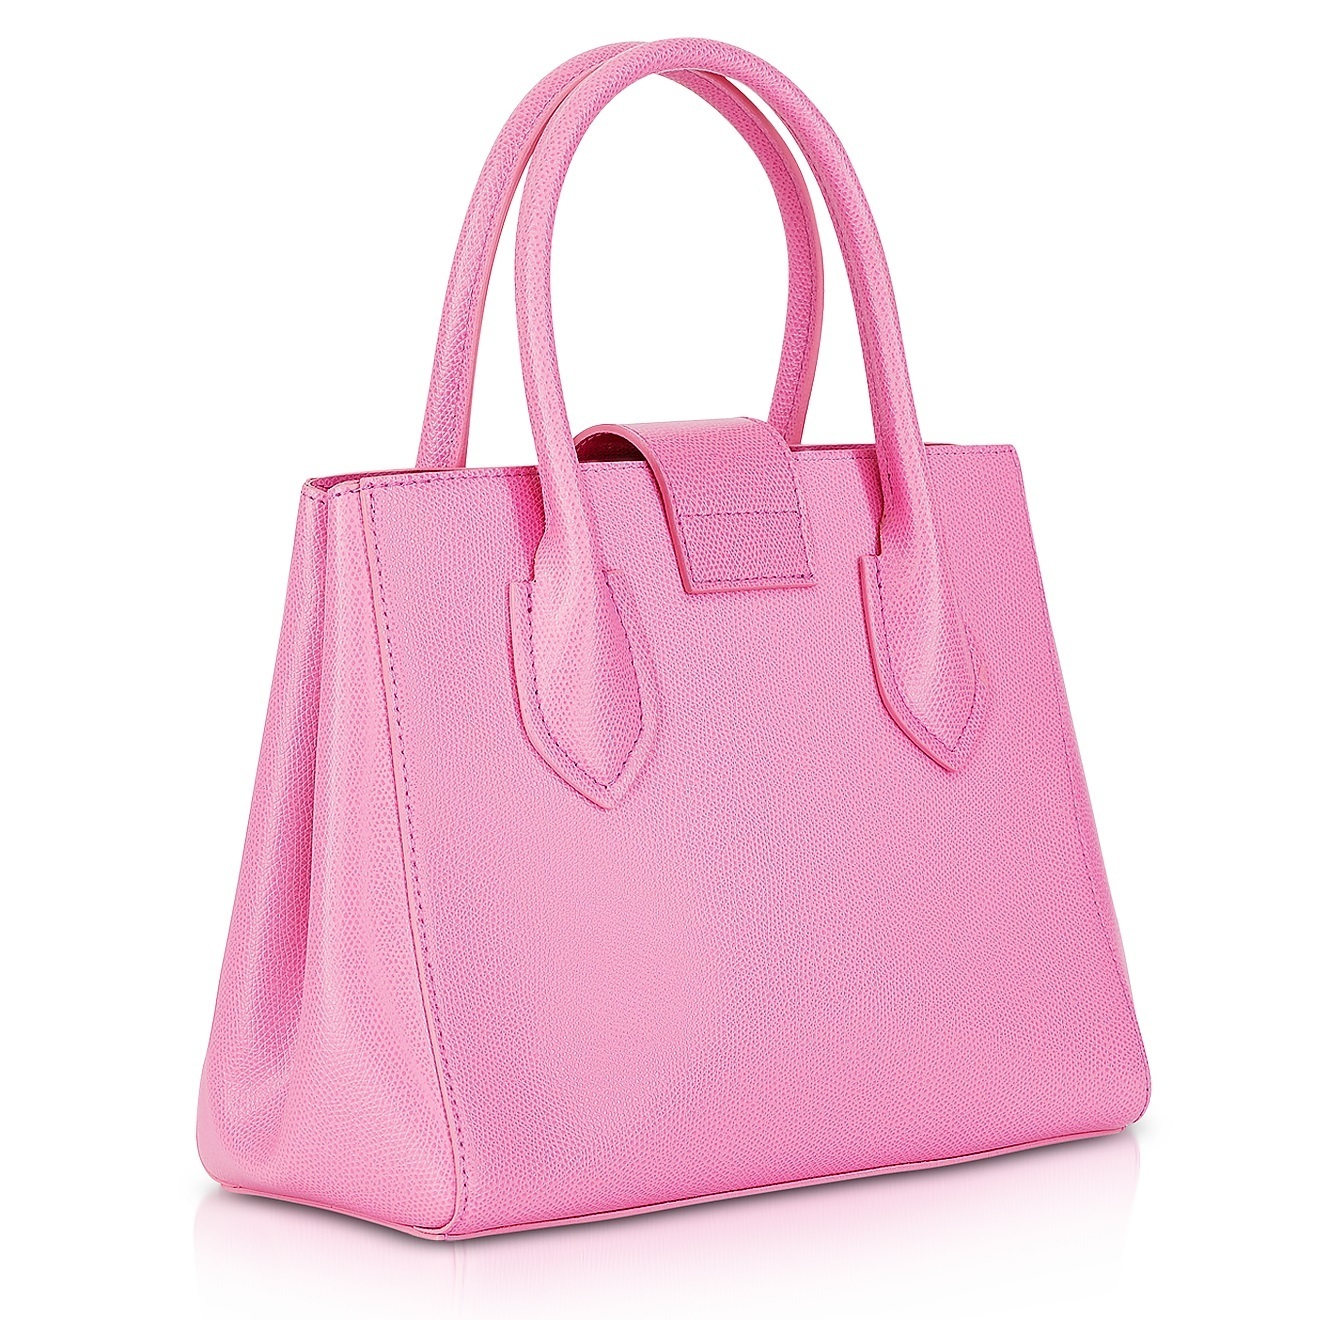 ★FURLA★ Metropolis Small Leather Pink トートバッグ 関税込